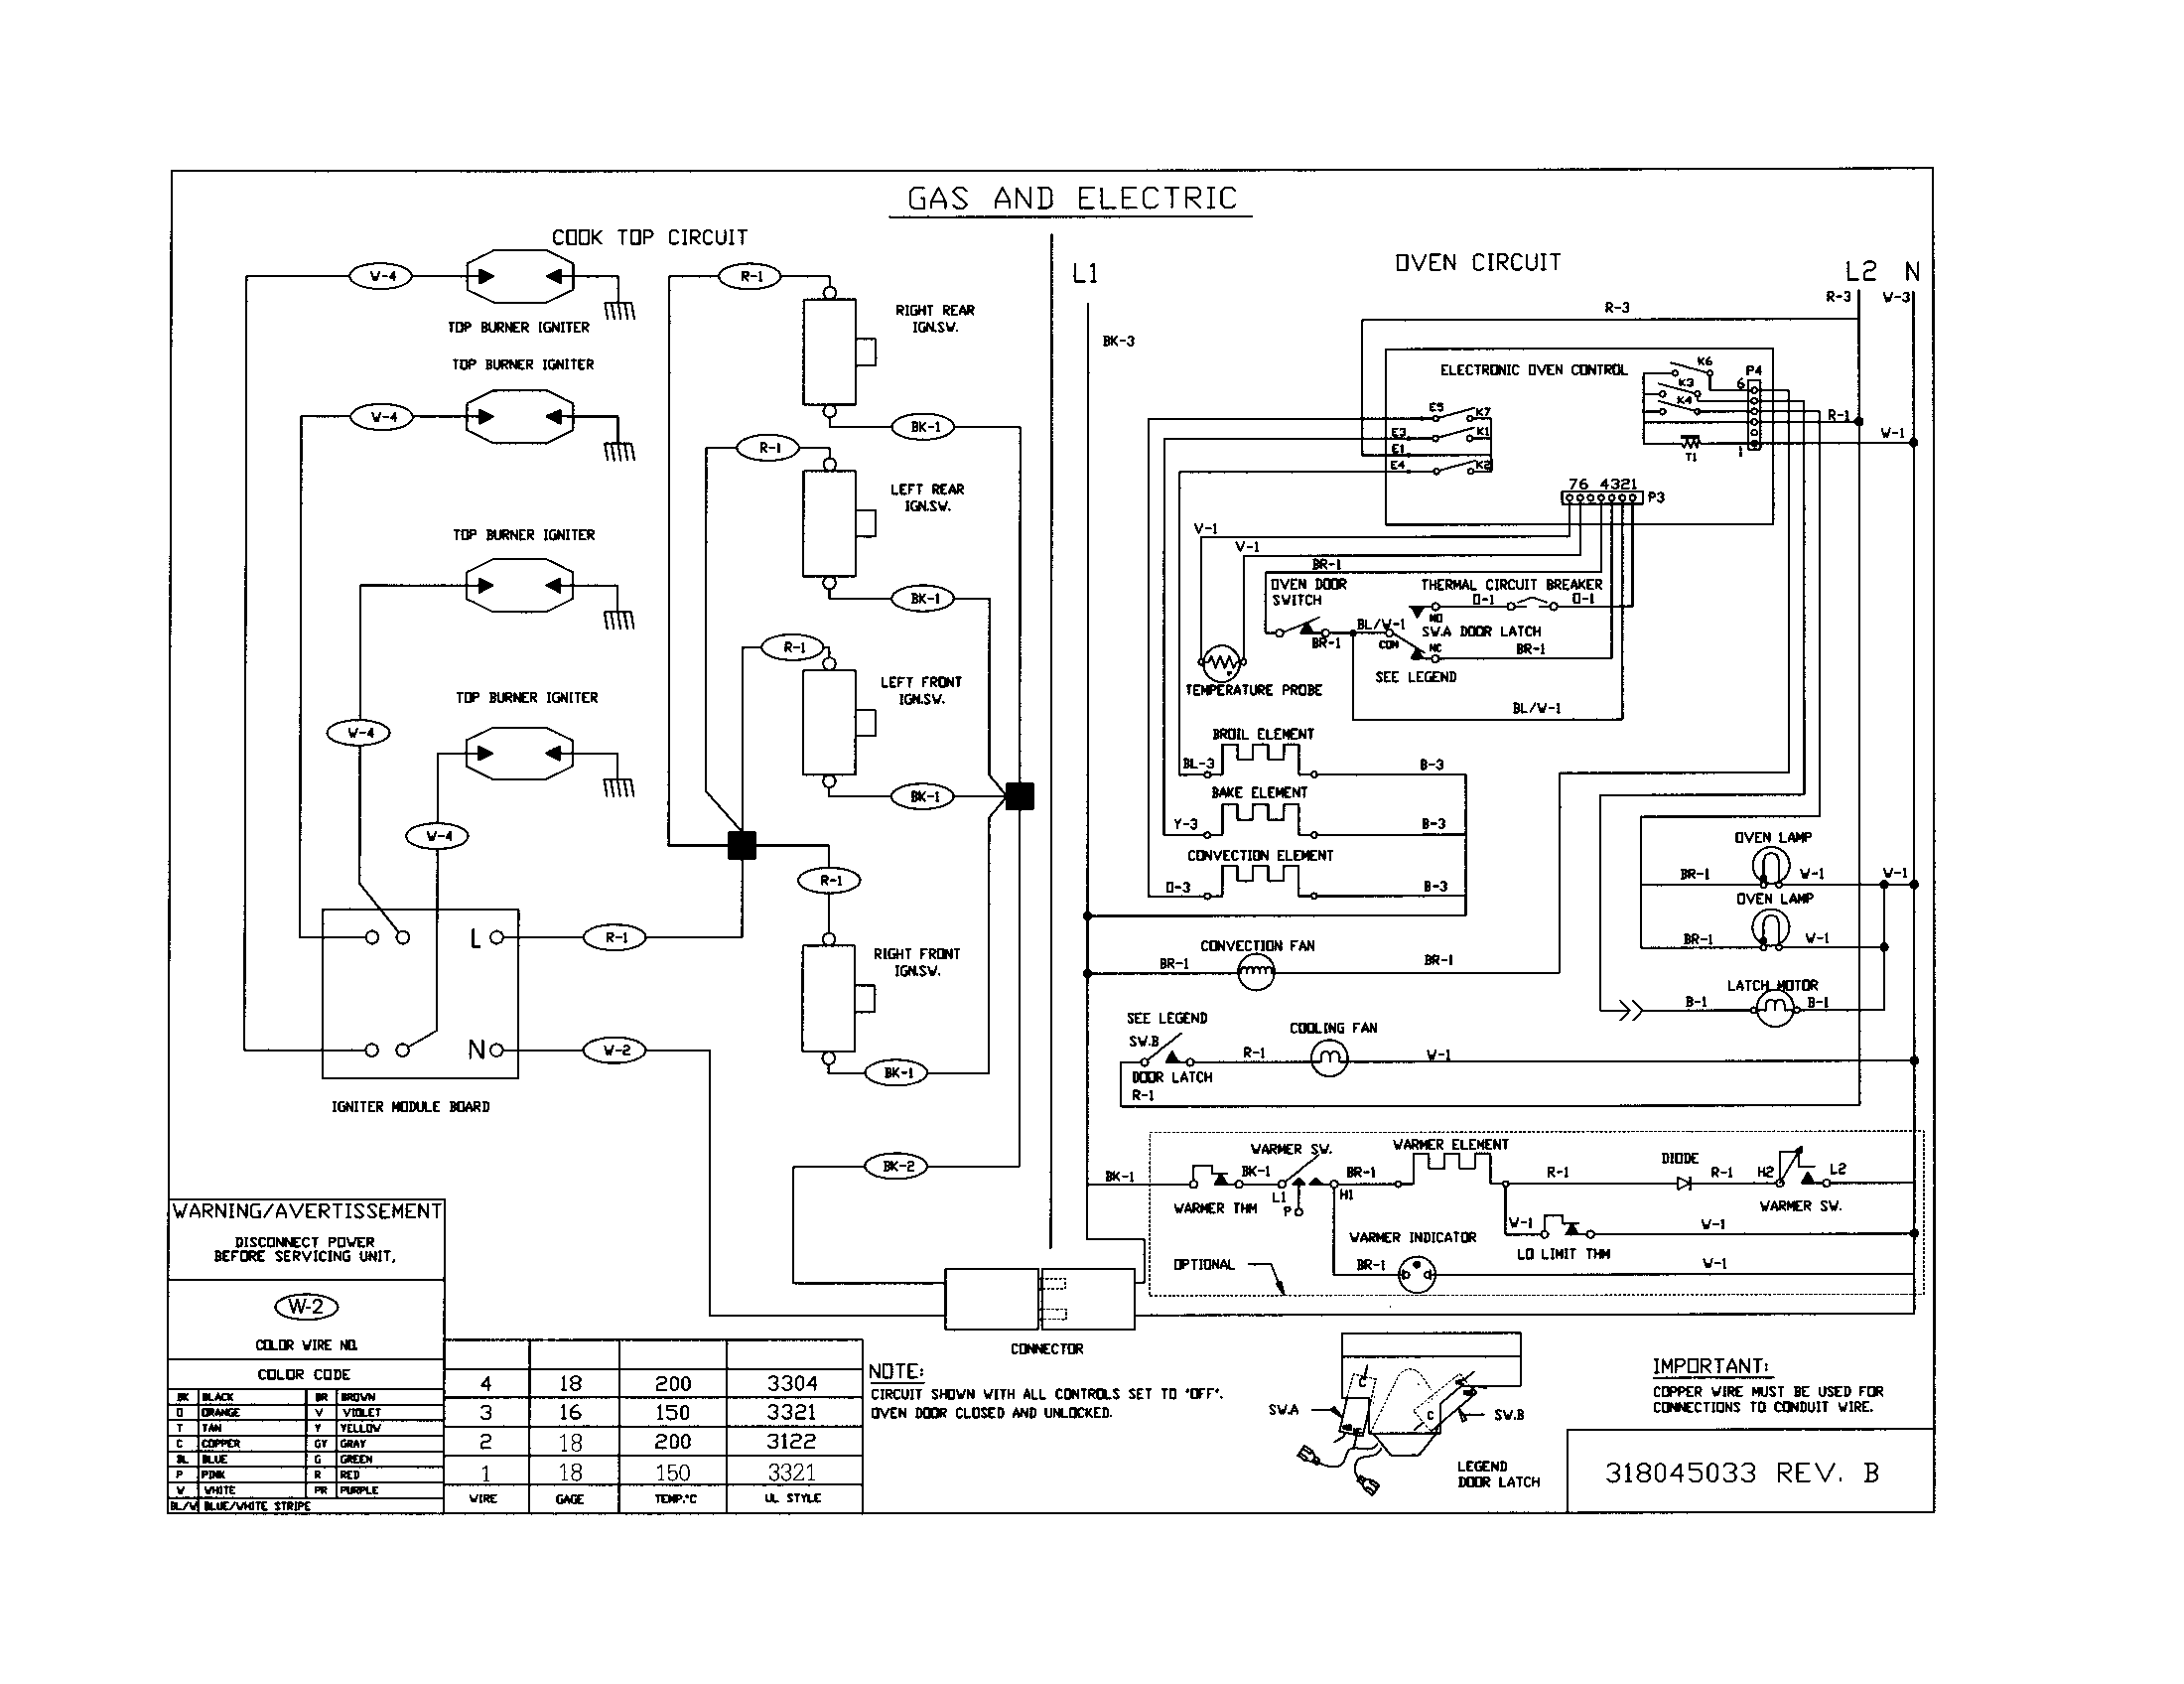 kenmore elite schematic diagram product wiring diagrams u2022 rh genesisventures us kenmore ultra wash dishwasher diagram kenmore ultra wash dishwasher parts diagram